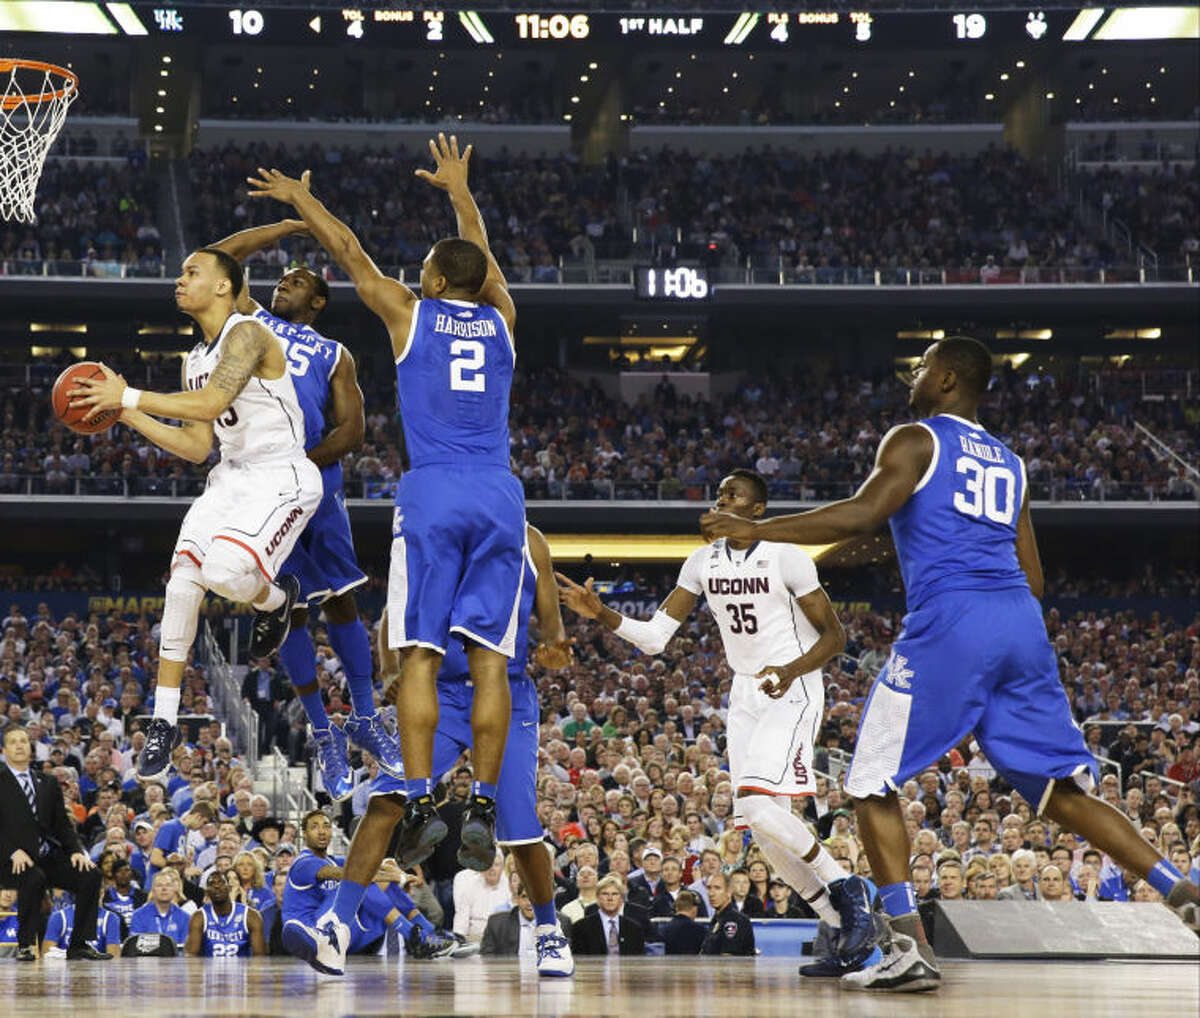 Connecticut guard Shabazz Napier shoots between Kentucky guard Dominique Hawkins (25) and guard Aaron Harrison (2) during the first half of the NCAA Final Four tournament college basketball championship game Monday, April 7, 2014, in Arlington, Texas. (AP Photo/David J. Phillip)